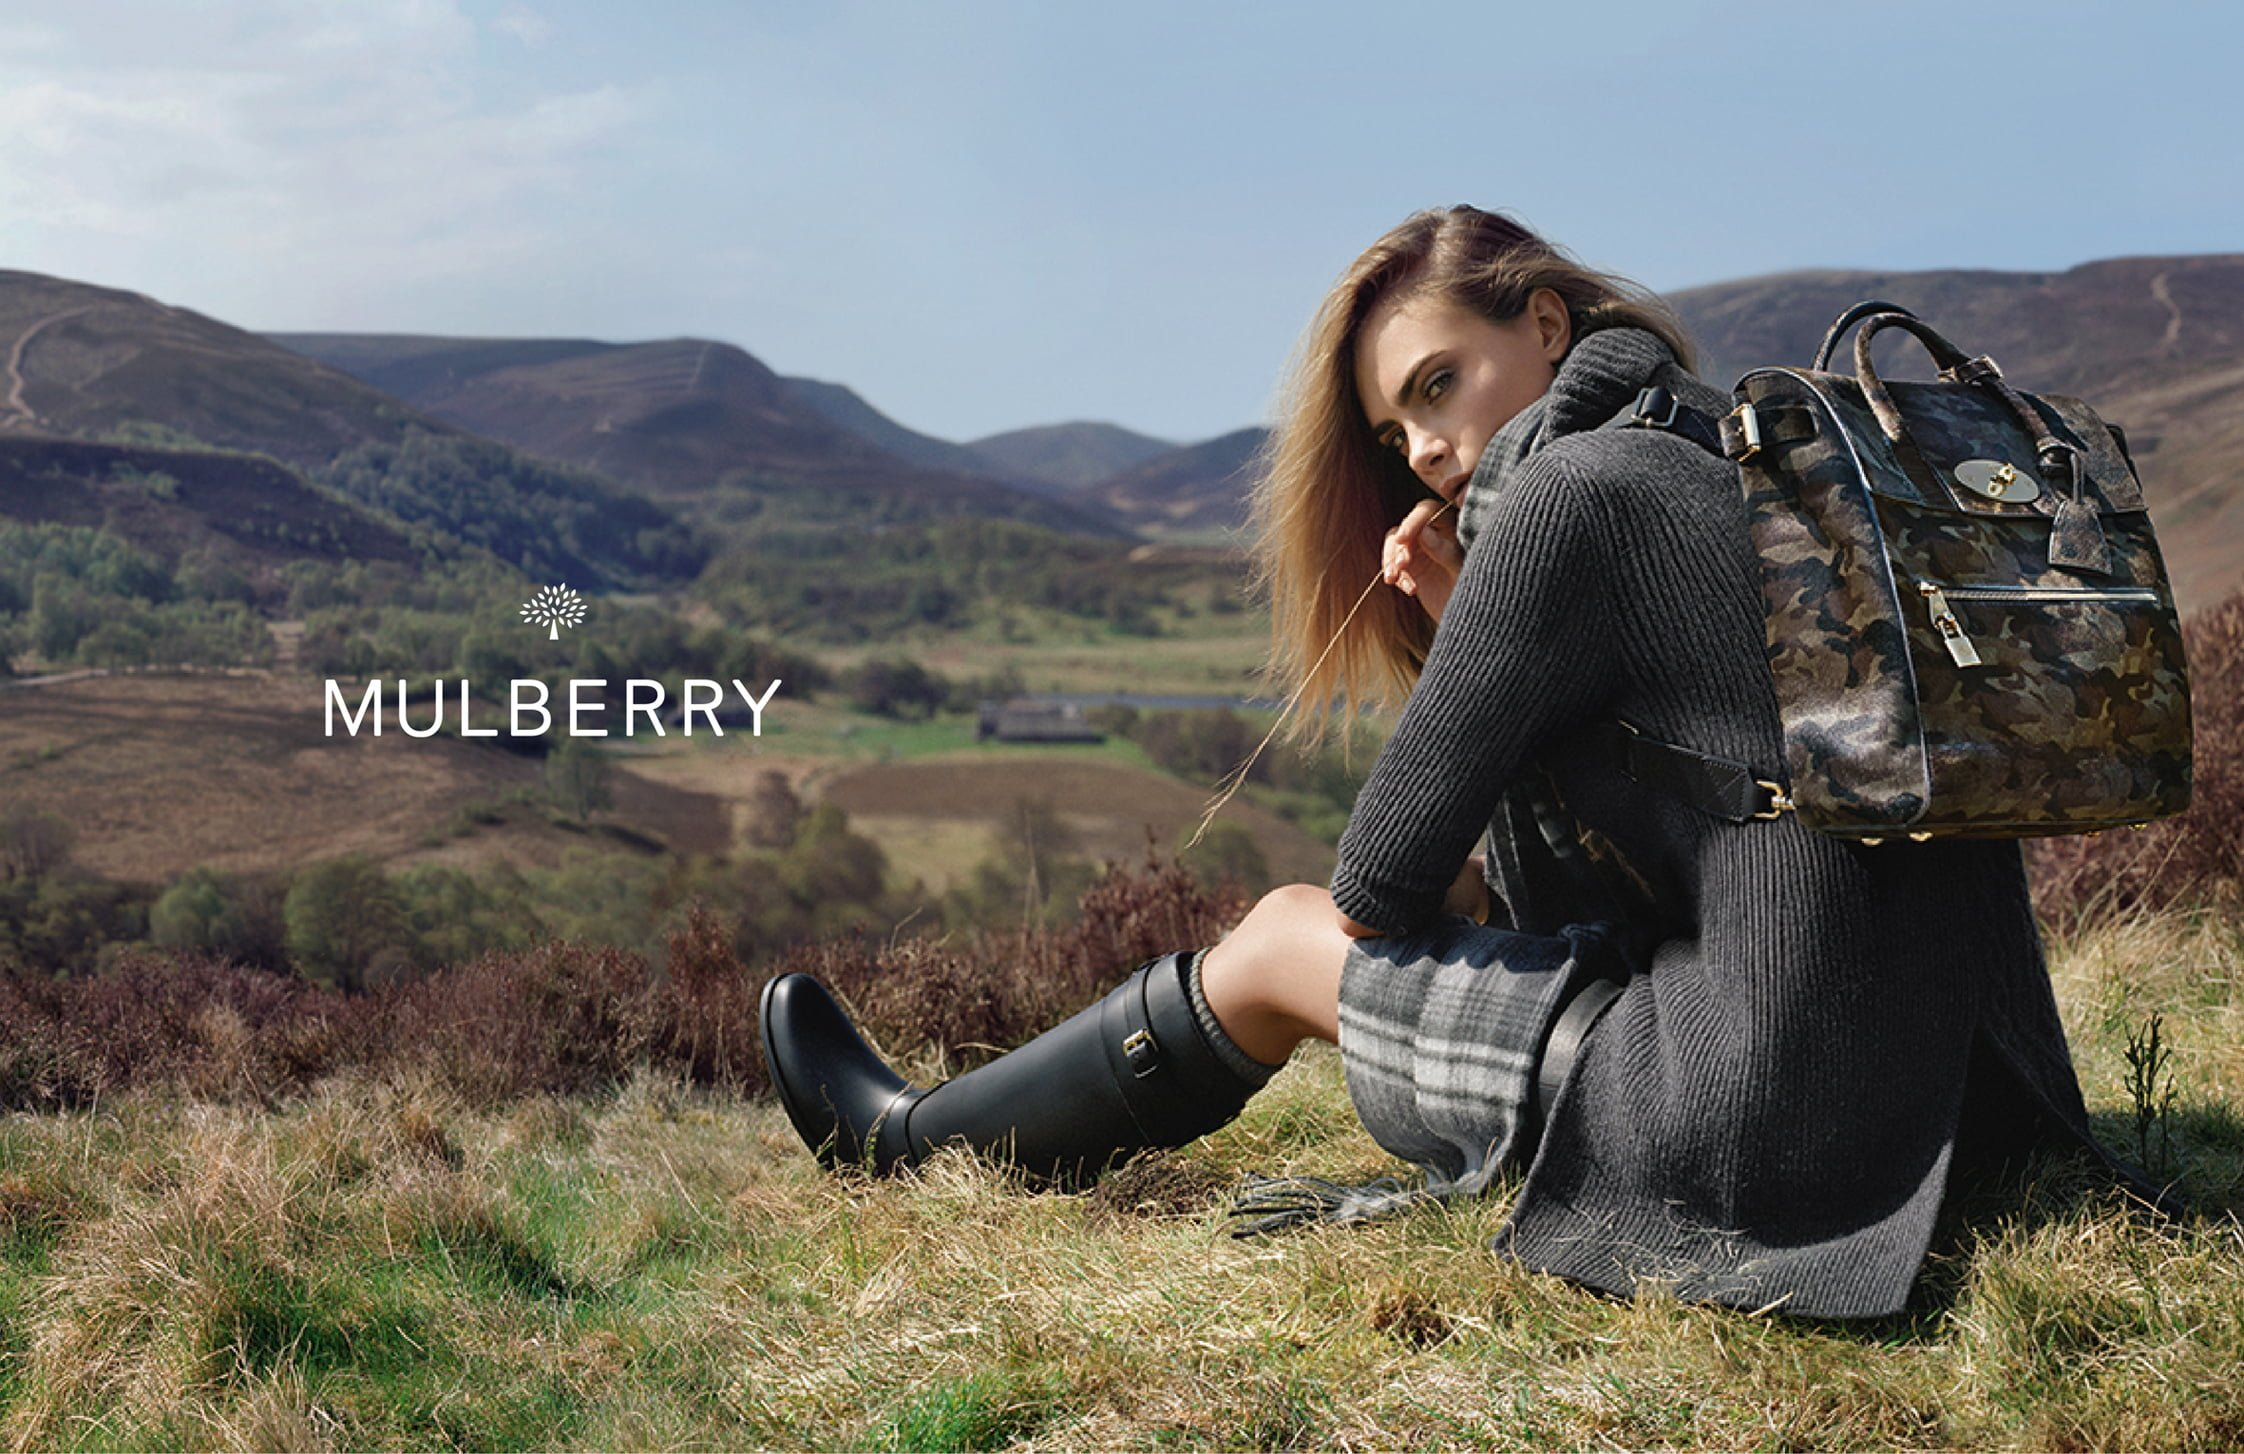 mulberry single catholic girls Here's where you can meet singles in mulberry,  christian singles, catholic  pet lovers, cute mulberry women, handsome mulberry men, single parents, gay.